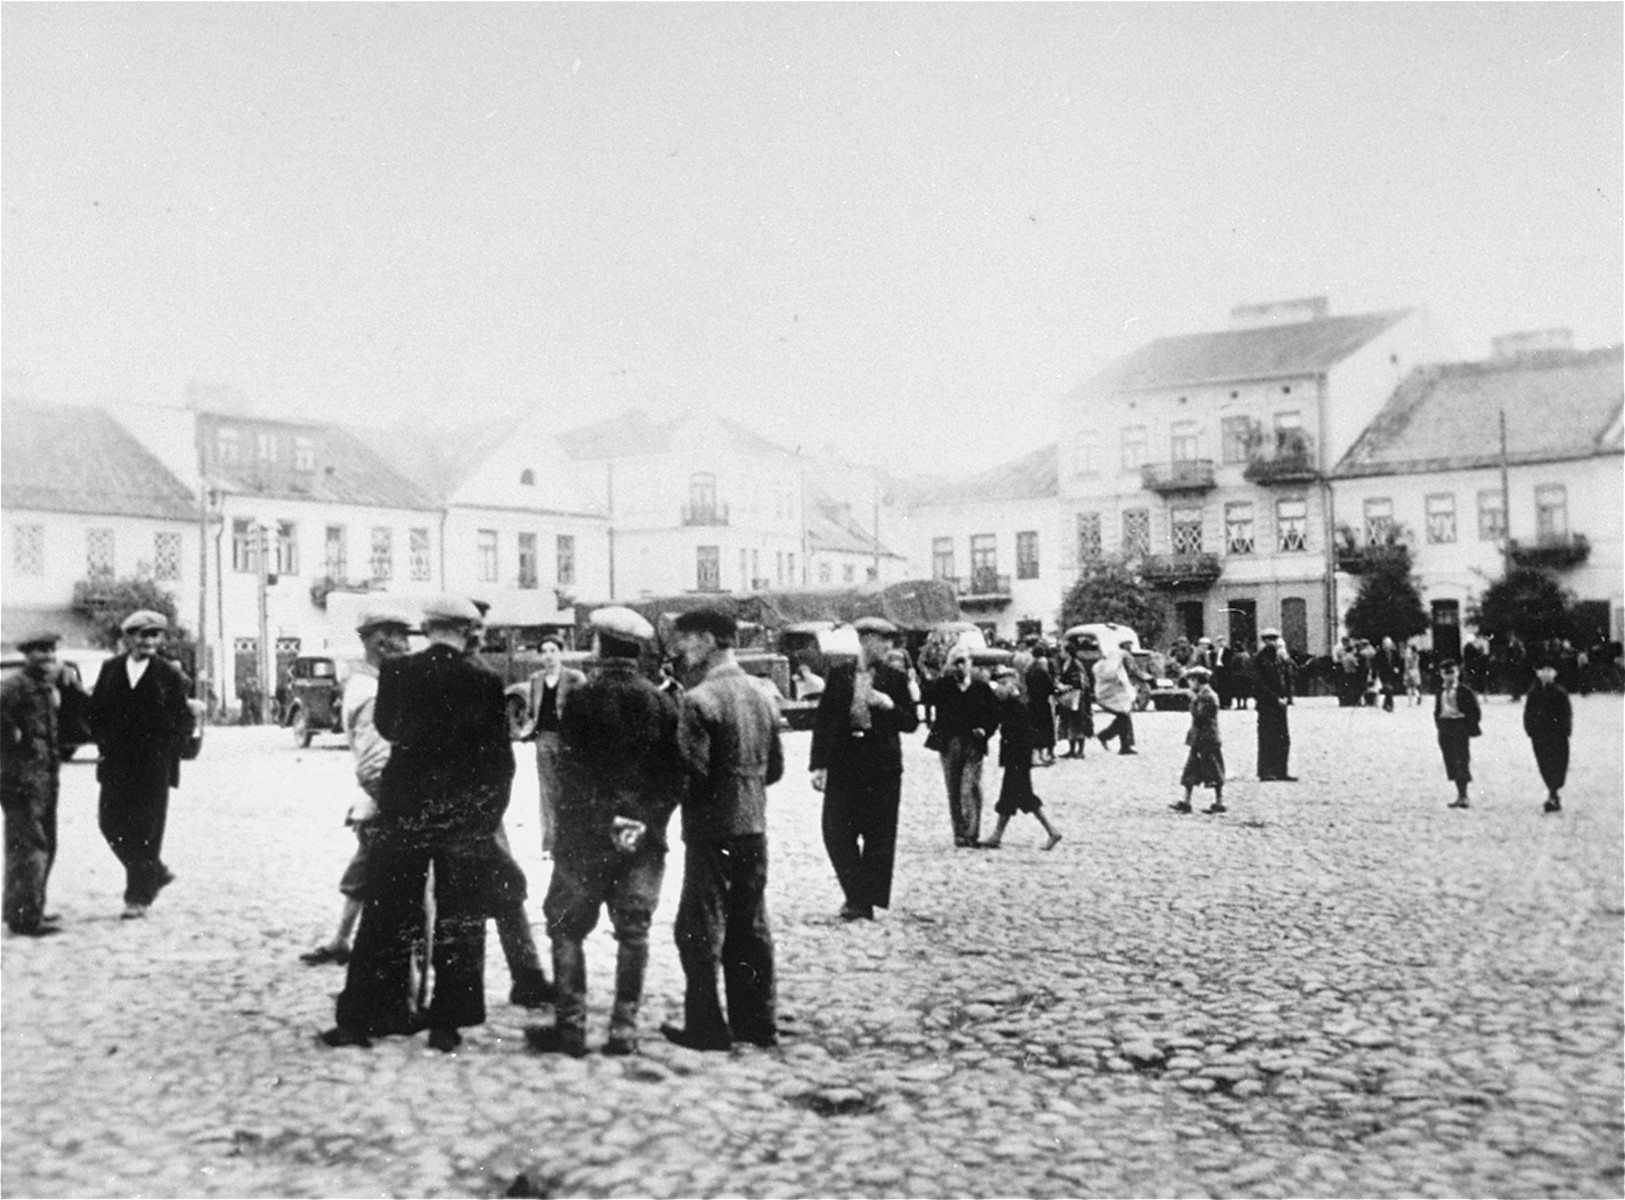 Jews are gathered in the town square of Raciaz.